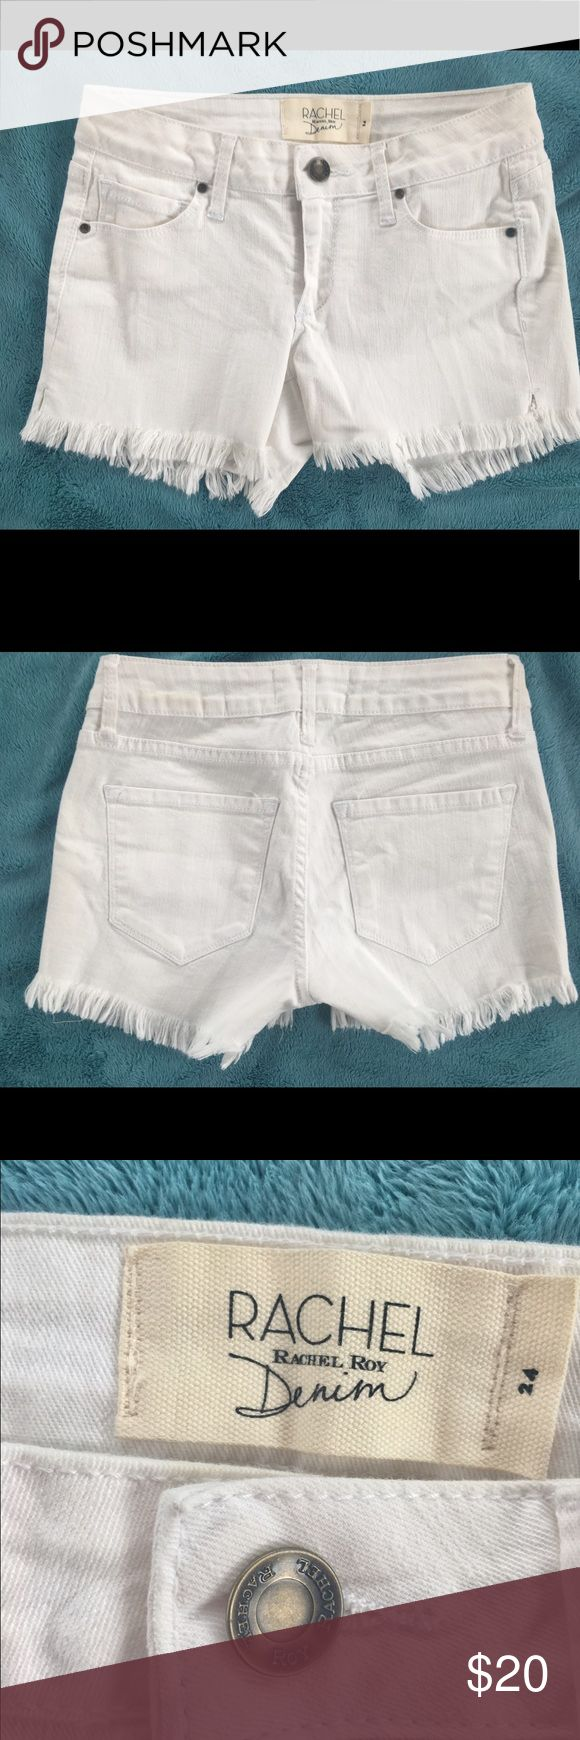 """Rachel Roy white denim shorts. Size 24"""" waist NEW! Rachel Zoe white denim shorts.  Juniors size 24"""" waist.  Frayed hem.  New without tags.  Never worn.   Clean, no stains, no holes.  From clean, smoke-free home. 🌺 RACHEL Rachel Roy Shorts Jean Shorts"""